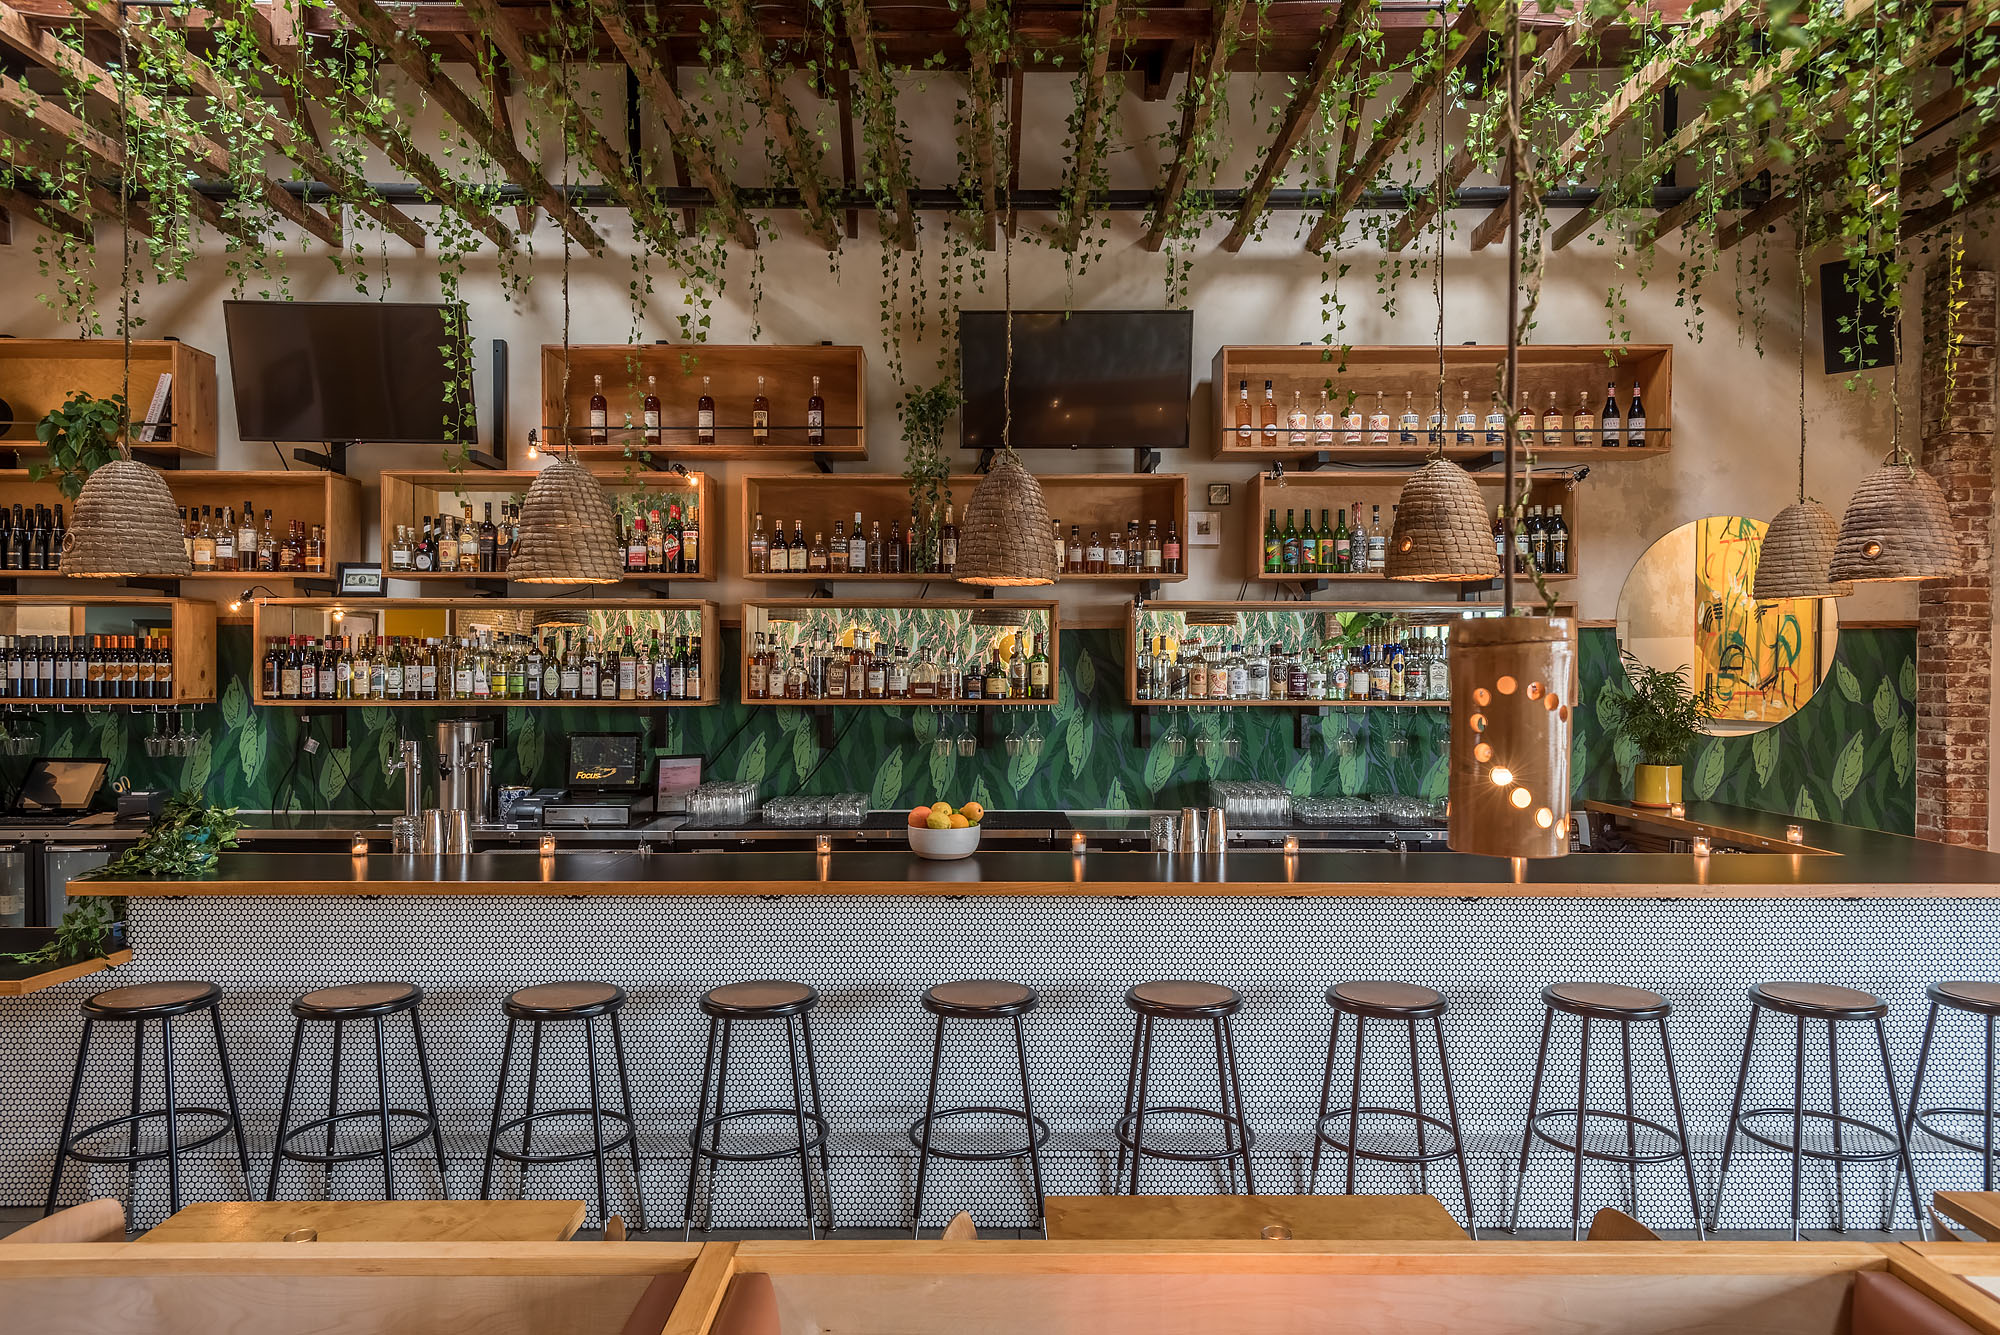 A lush and leafy bar with metal stools.